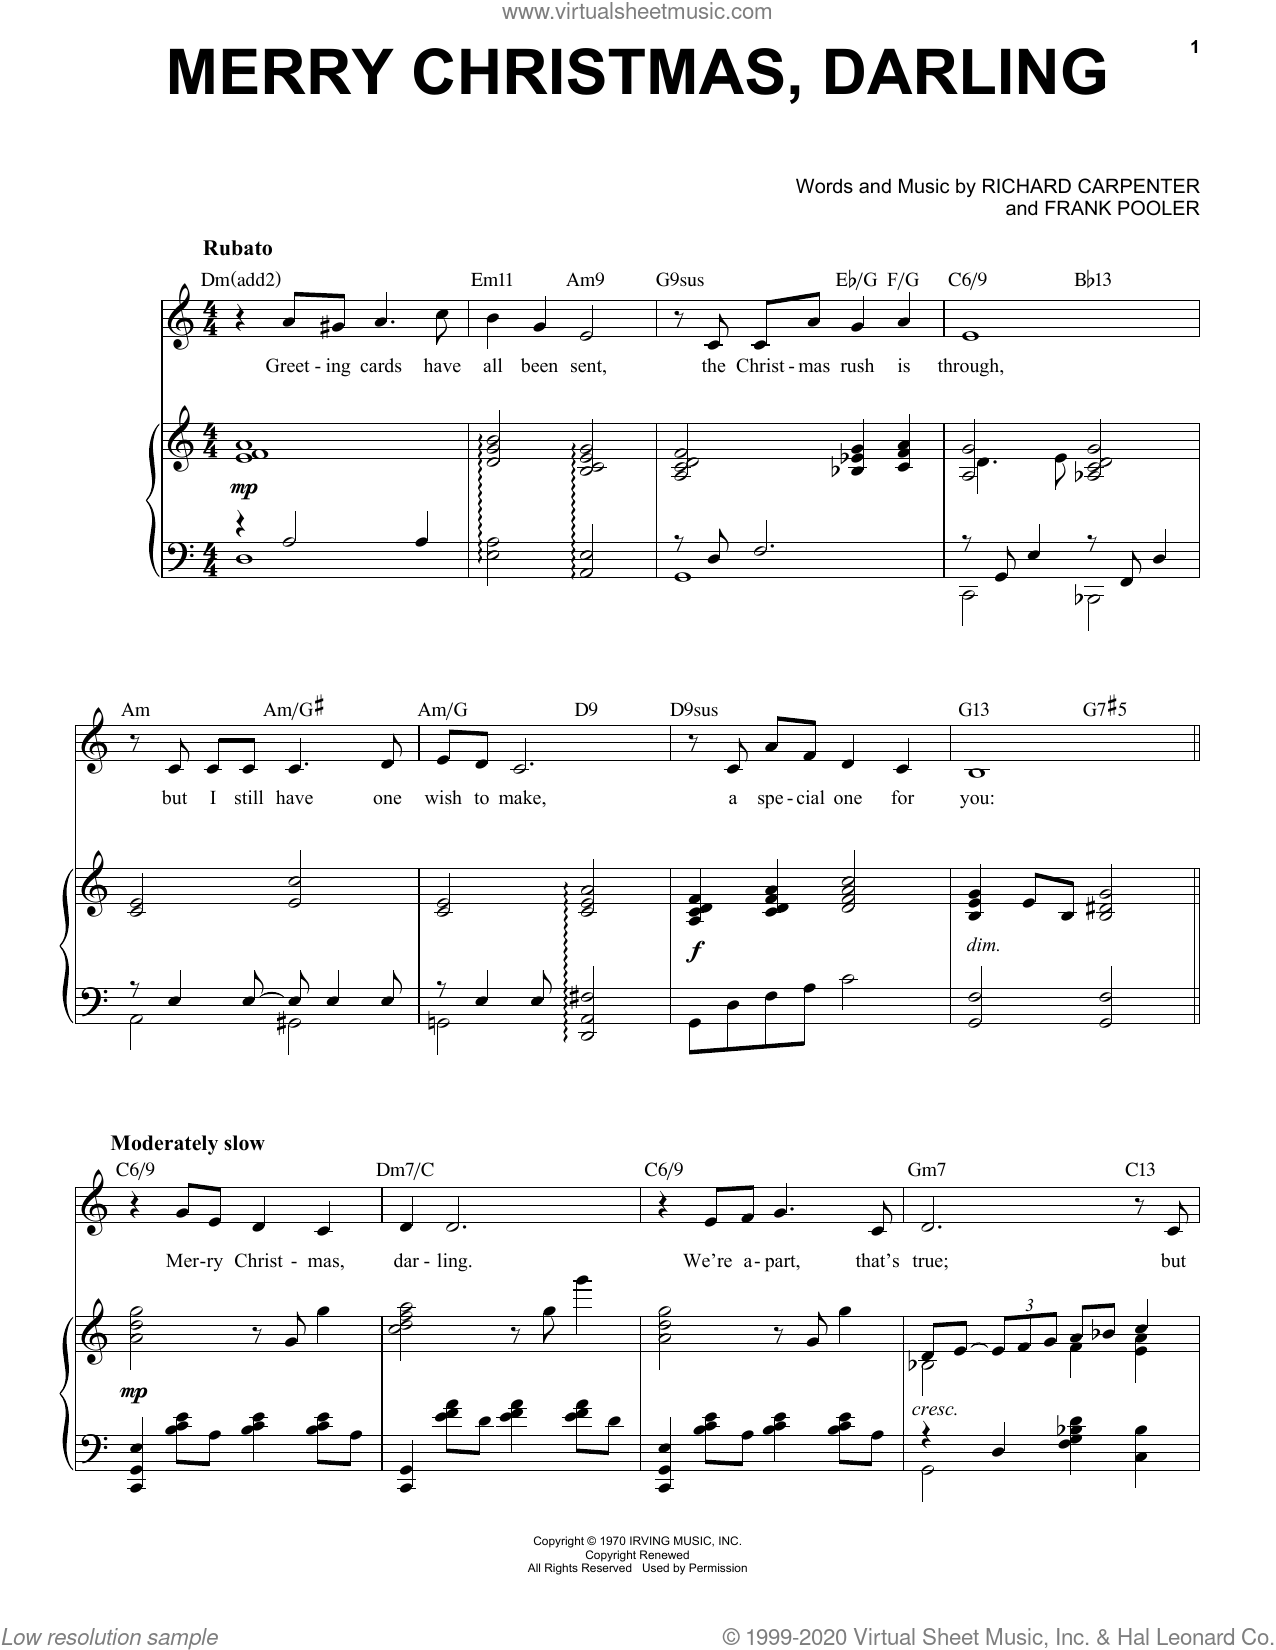 Merry Christmas, Darling [Jazz Version] (arr. Brent Edstrom) sheet music for voice and piano (High Voice) by Richard Carpenter, Brent Edstrom, Carpenters and Frank Pooler, intermediate skill level